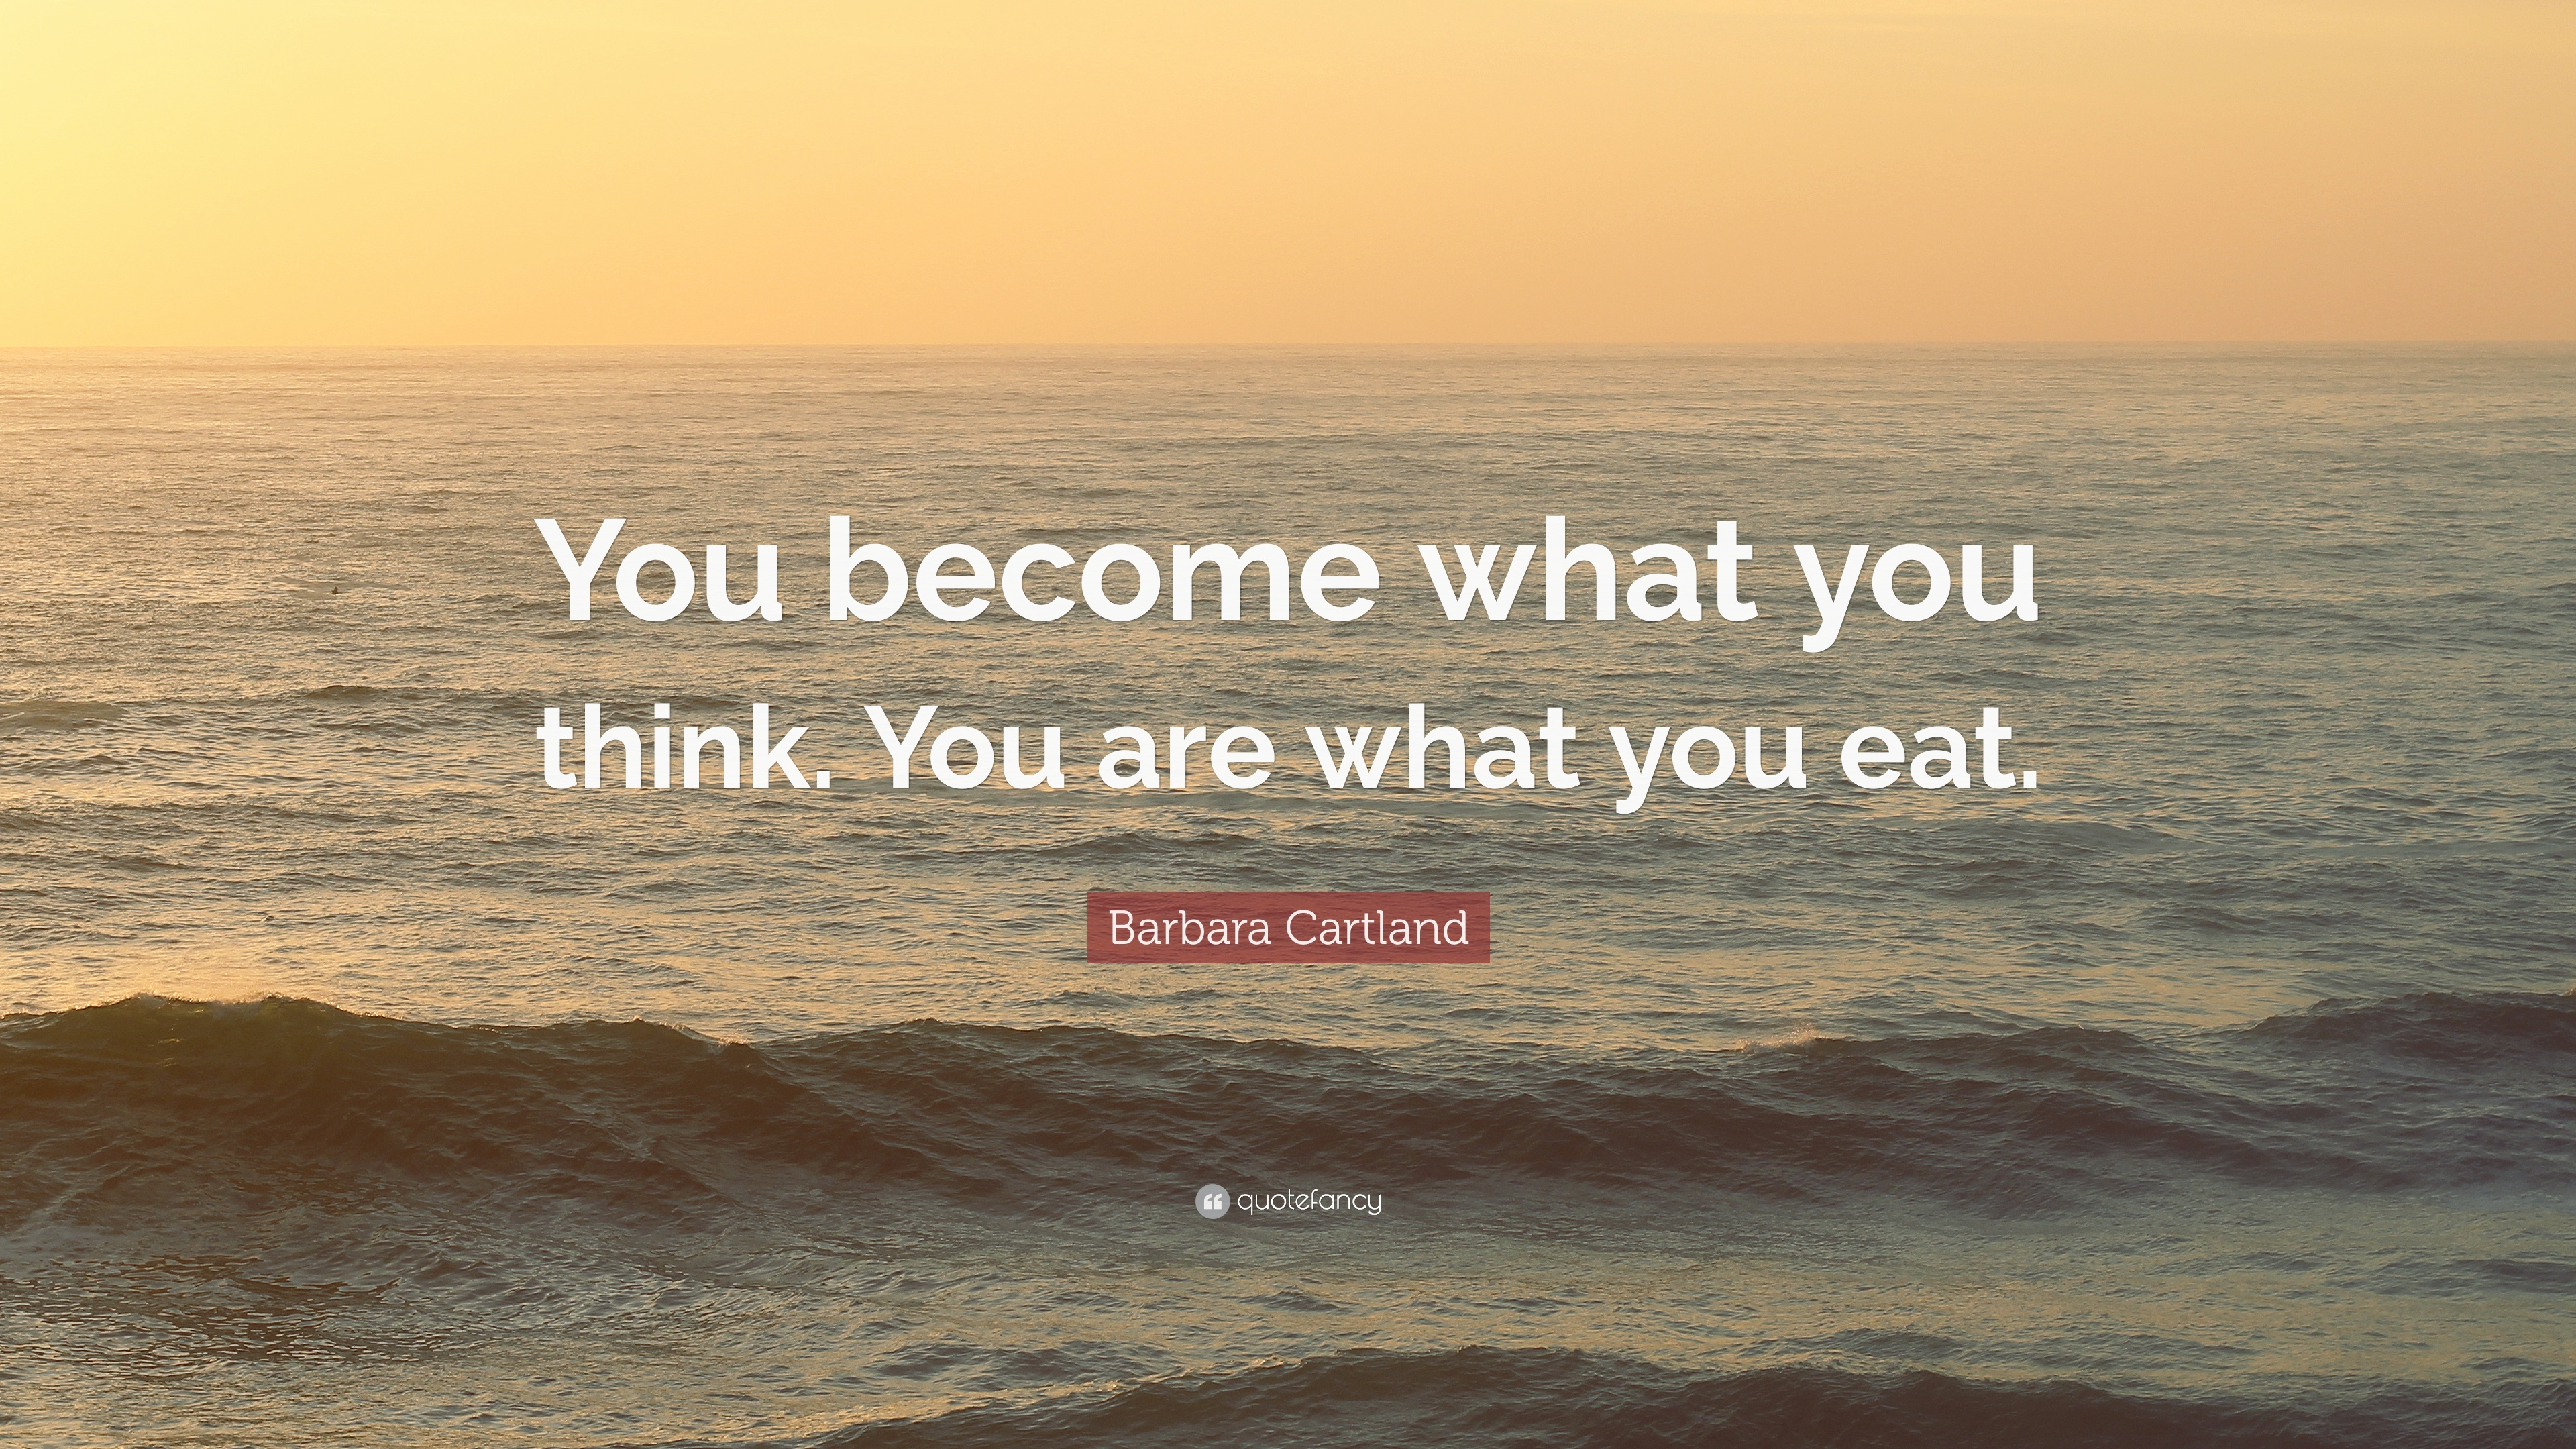 Barbara Cartland Quote You Become What You Think You Are What You